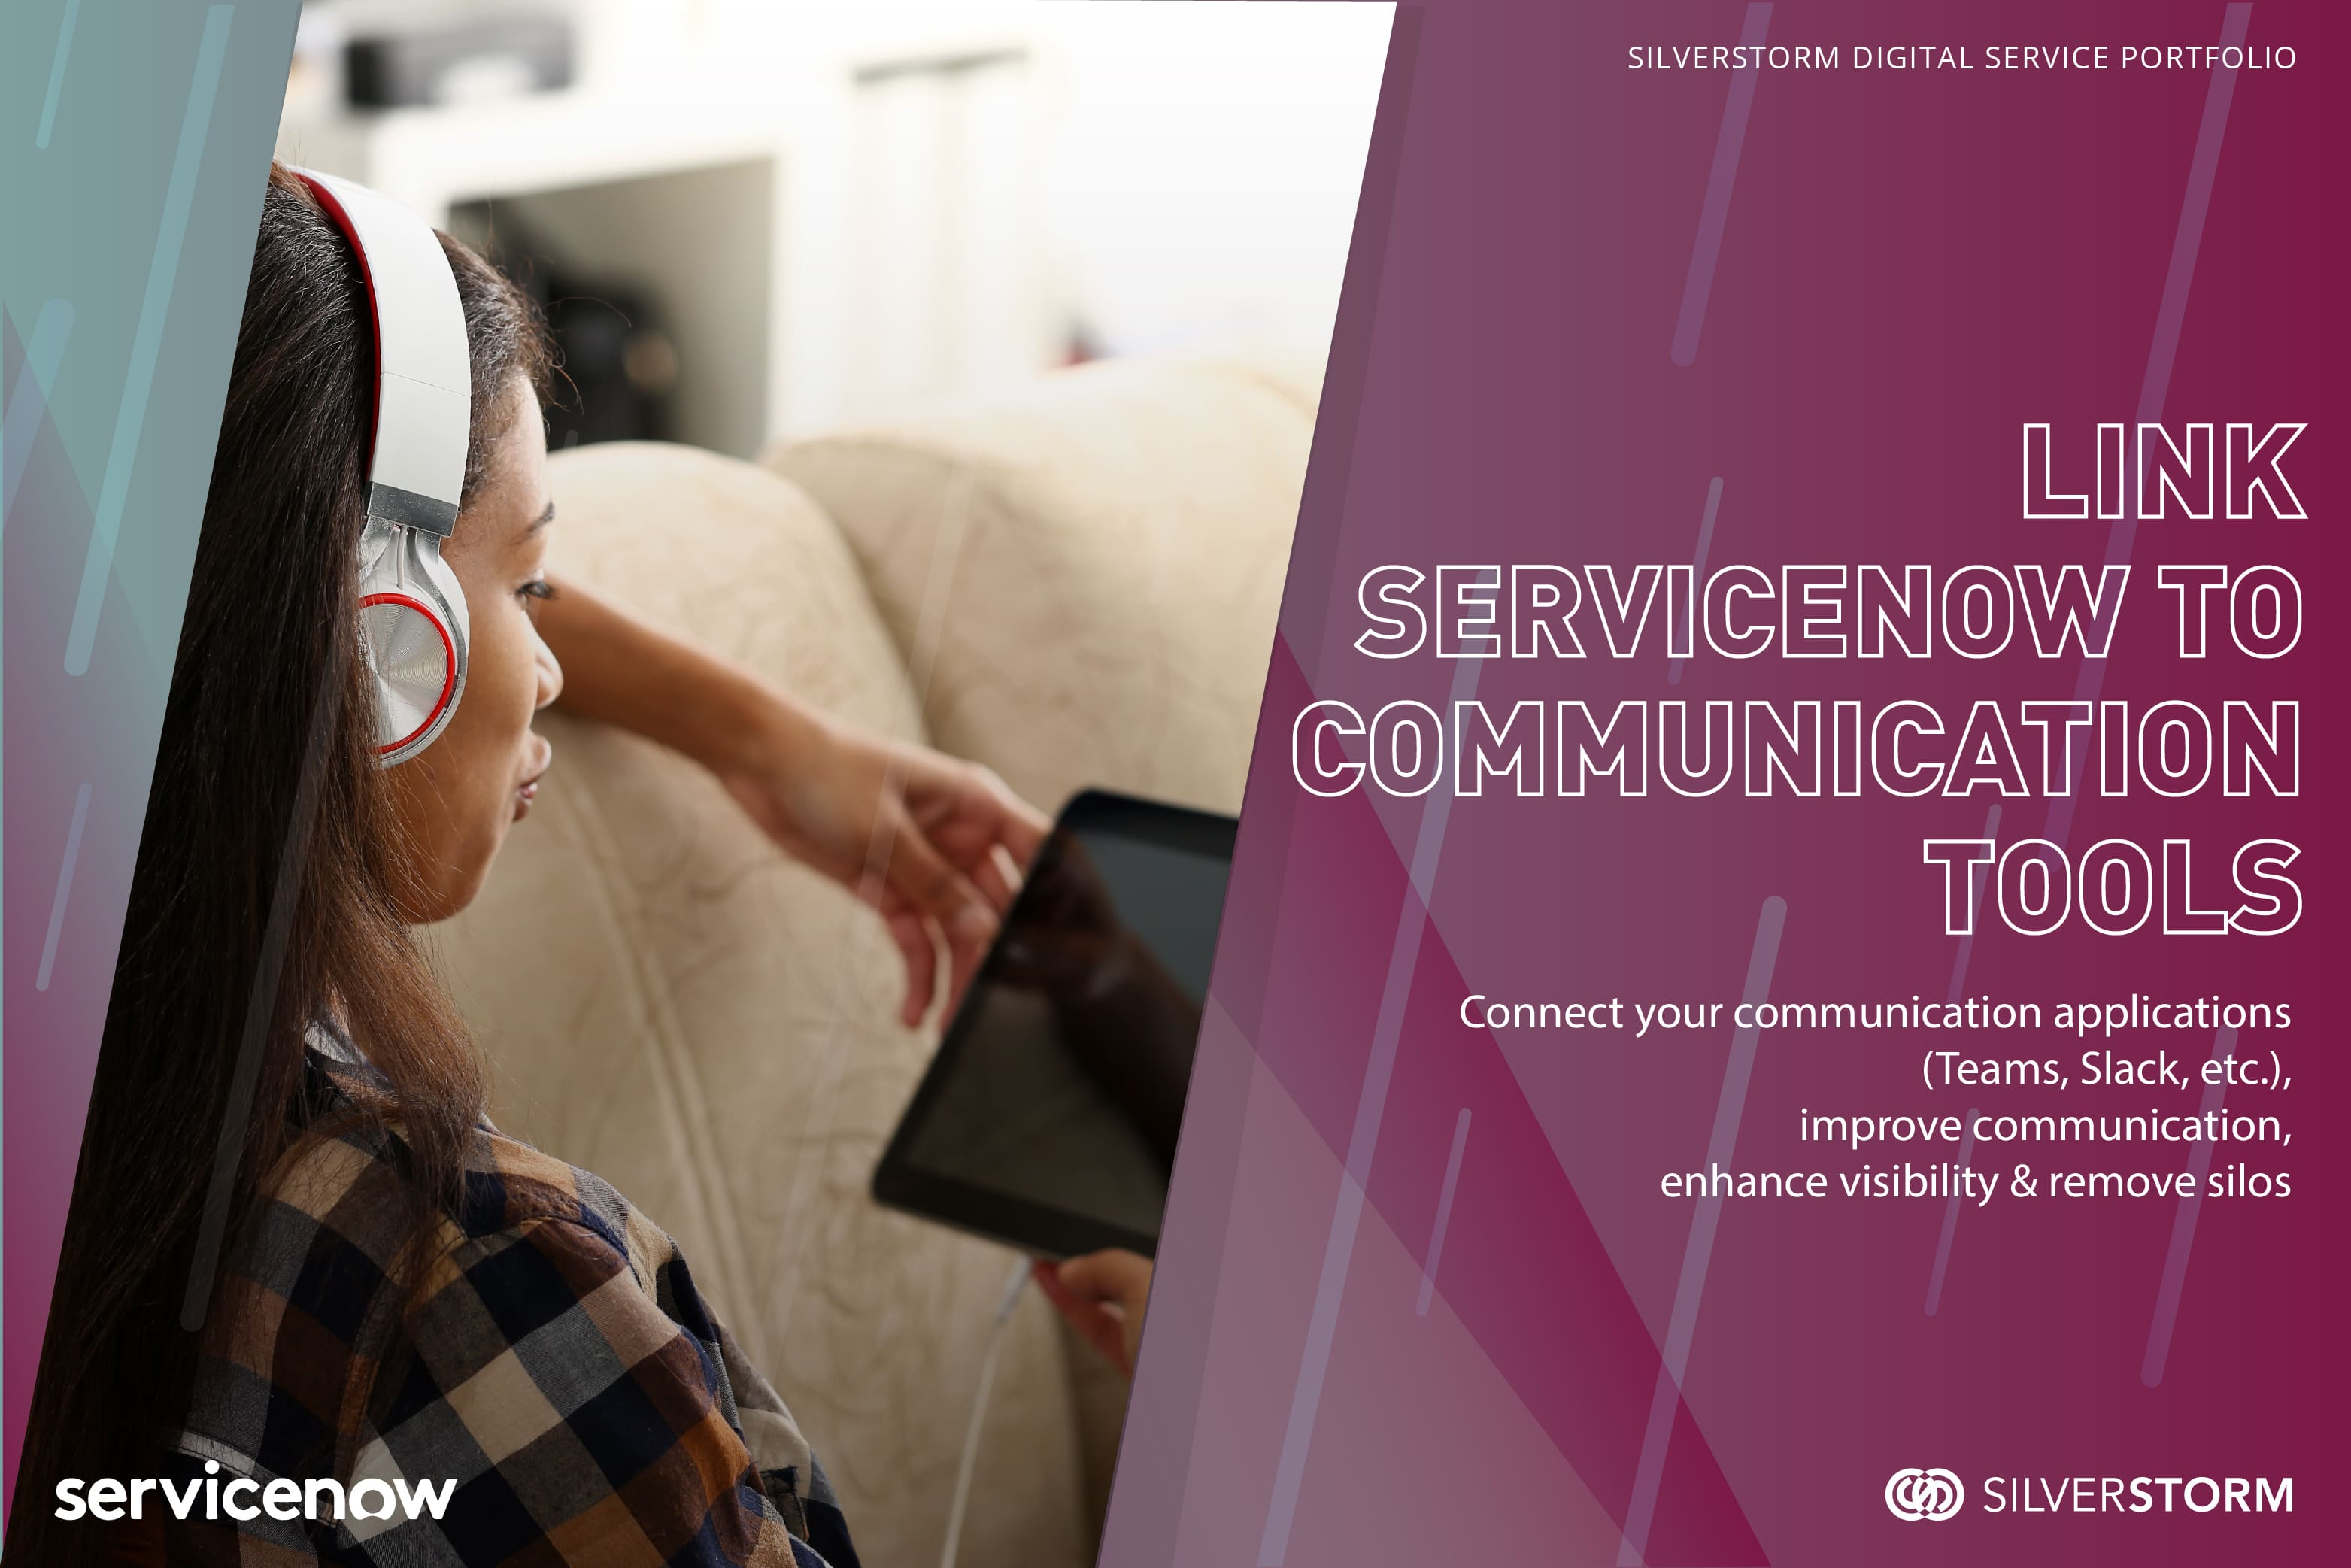 Link ServiceNow To Communication Tools